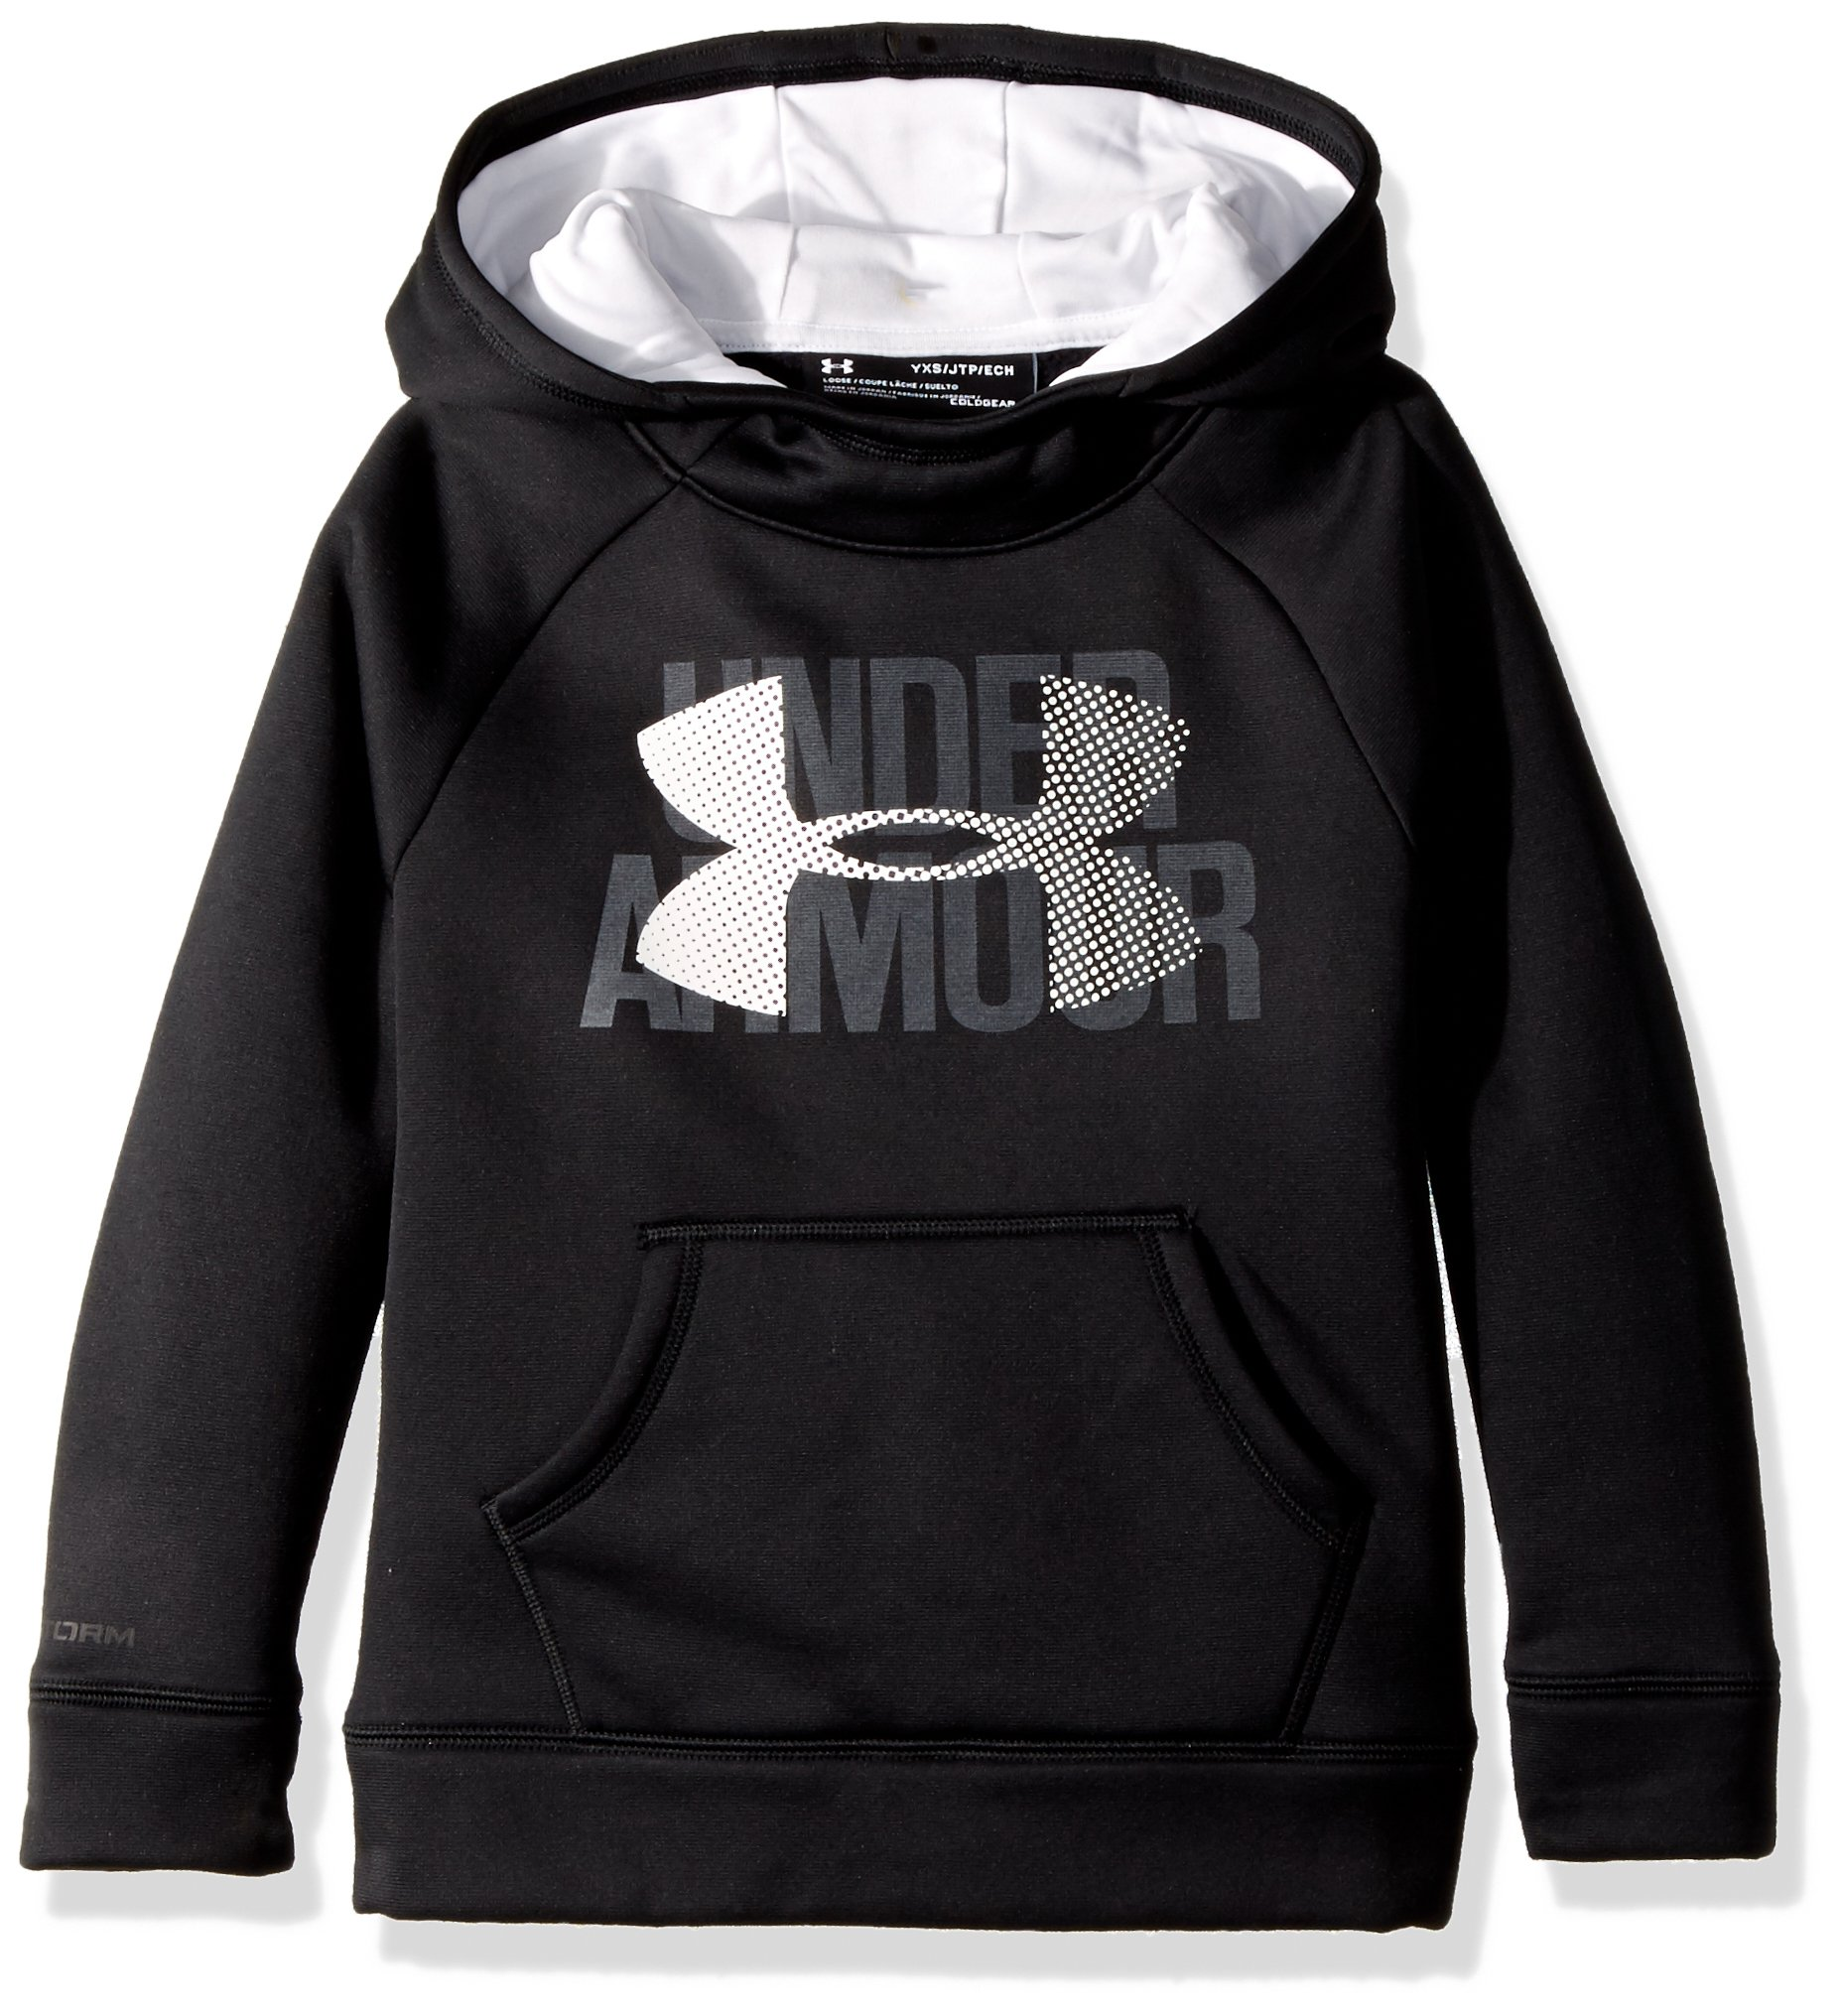 Under Armour Girls Big Logo Hoodie, Black /White, Youth X-Small by Under Armour